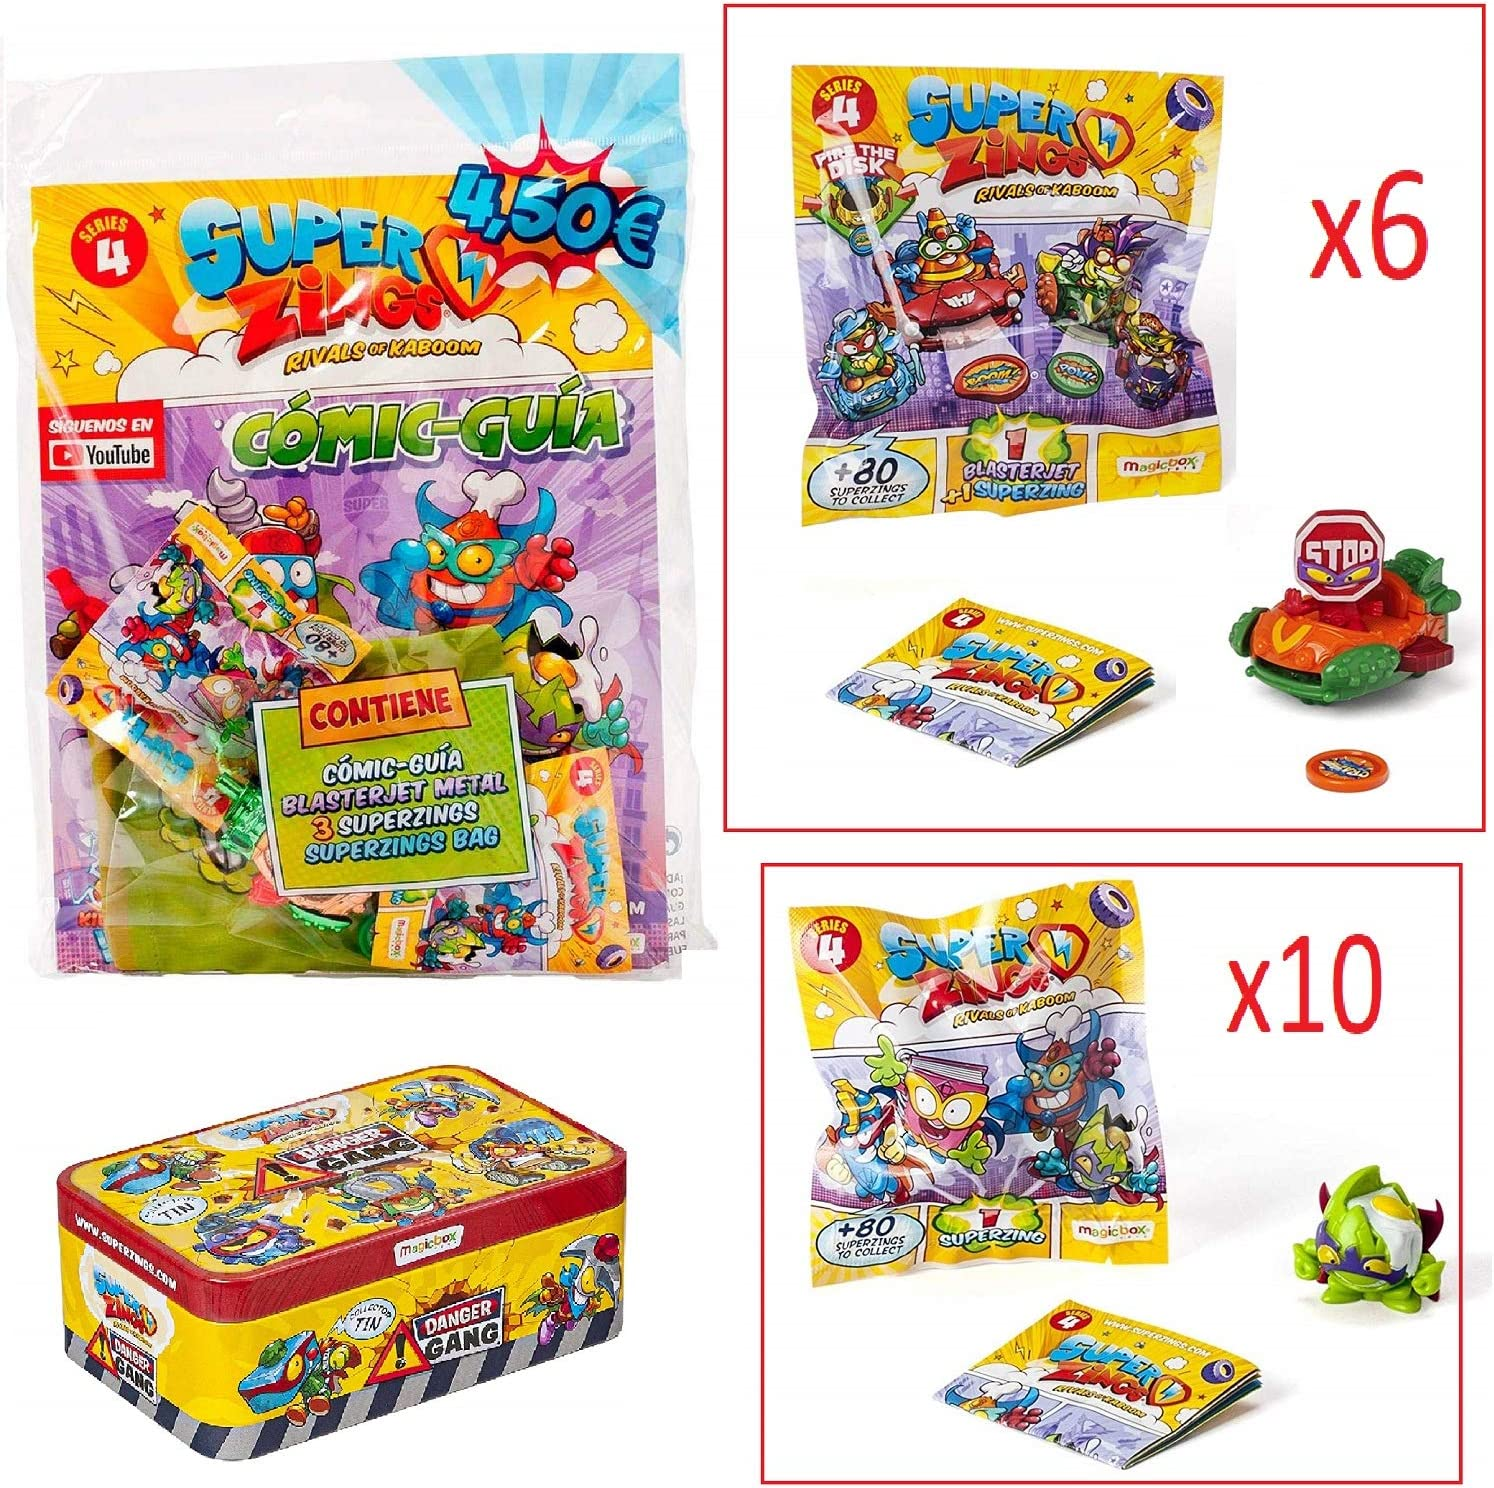 SuperZings Serie 4 - Pack Sorpresa con 18 Sets - 1 Bolsa Starterpack - 10 Sobres One Pack, 6 BlasterJets y 1 Tin Danger Gang con 5 exclusivos Villanos: Amazon.es: Juguetes y juegos